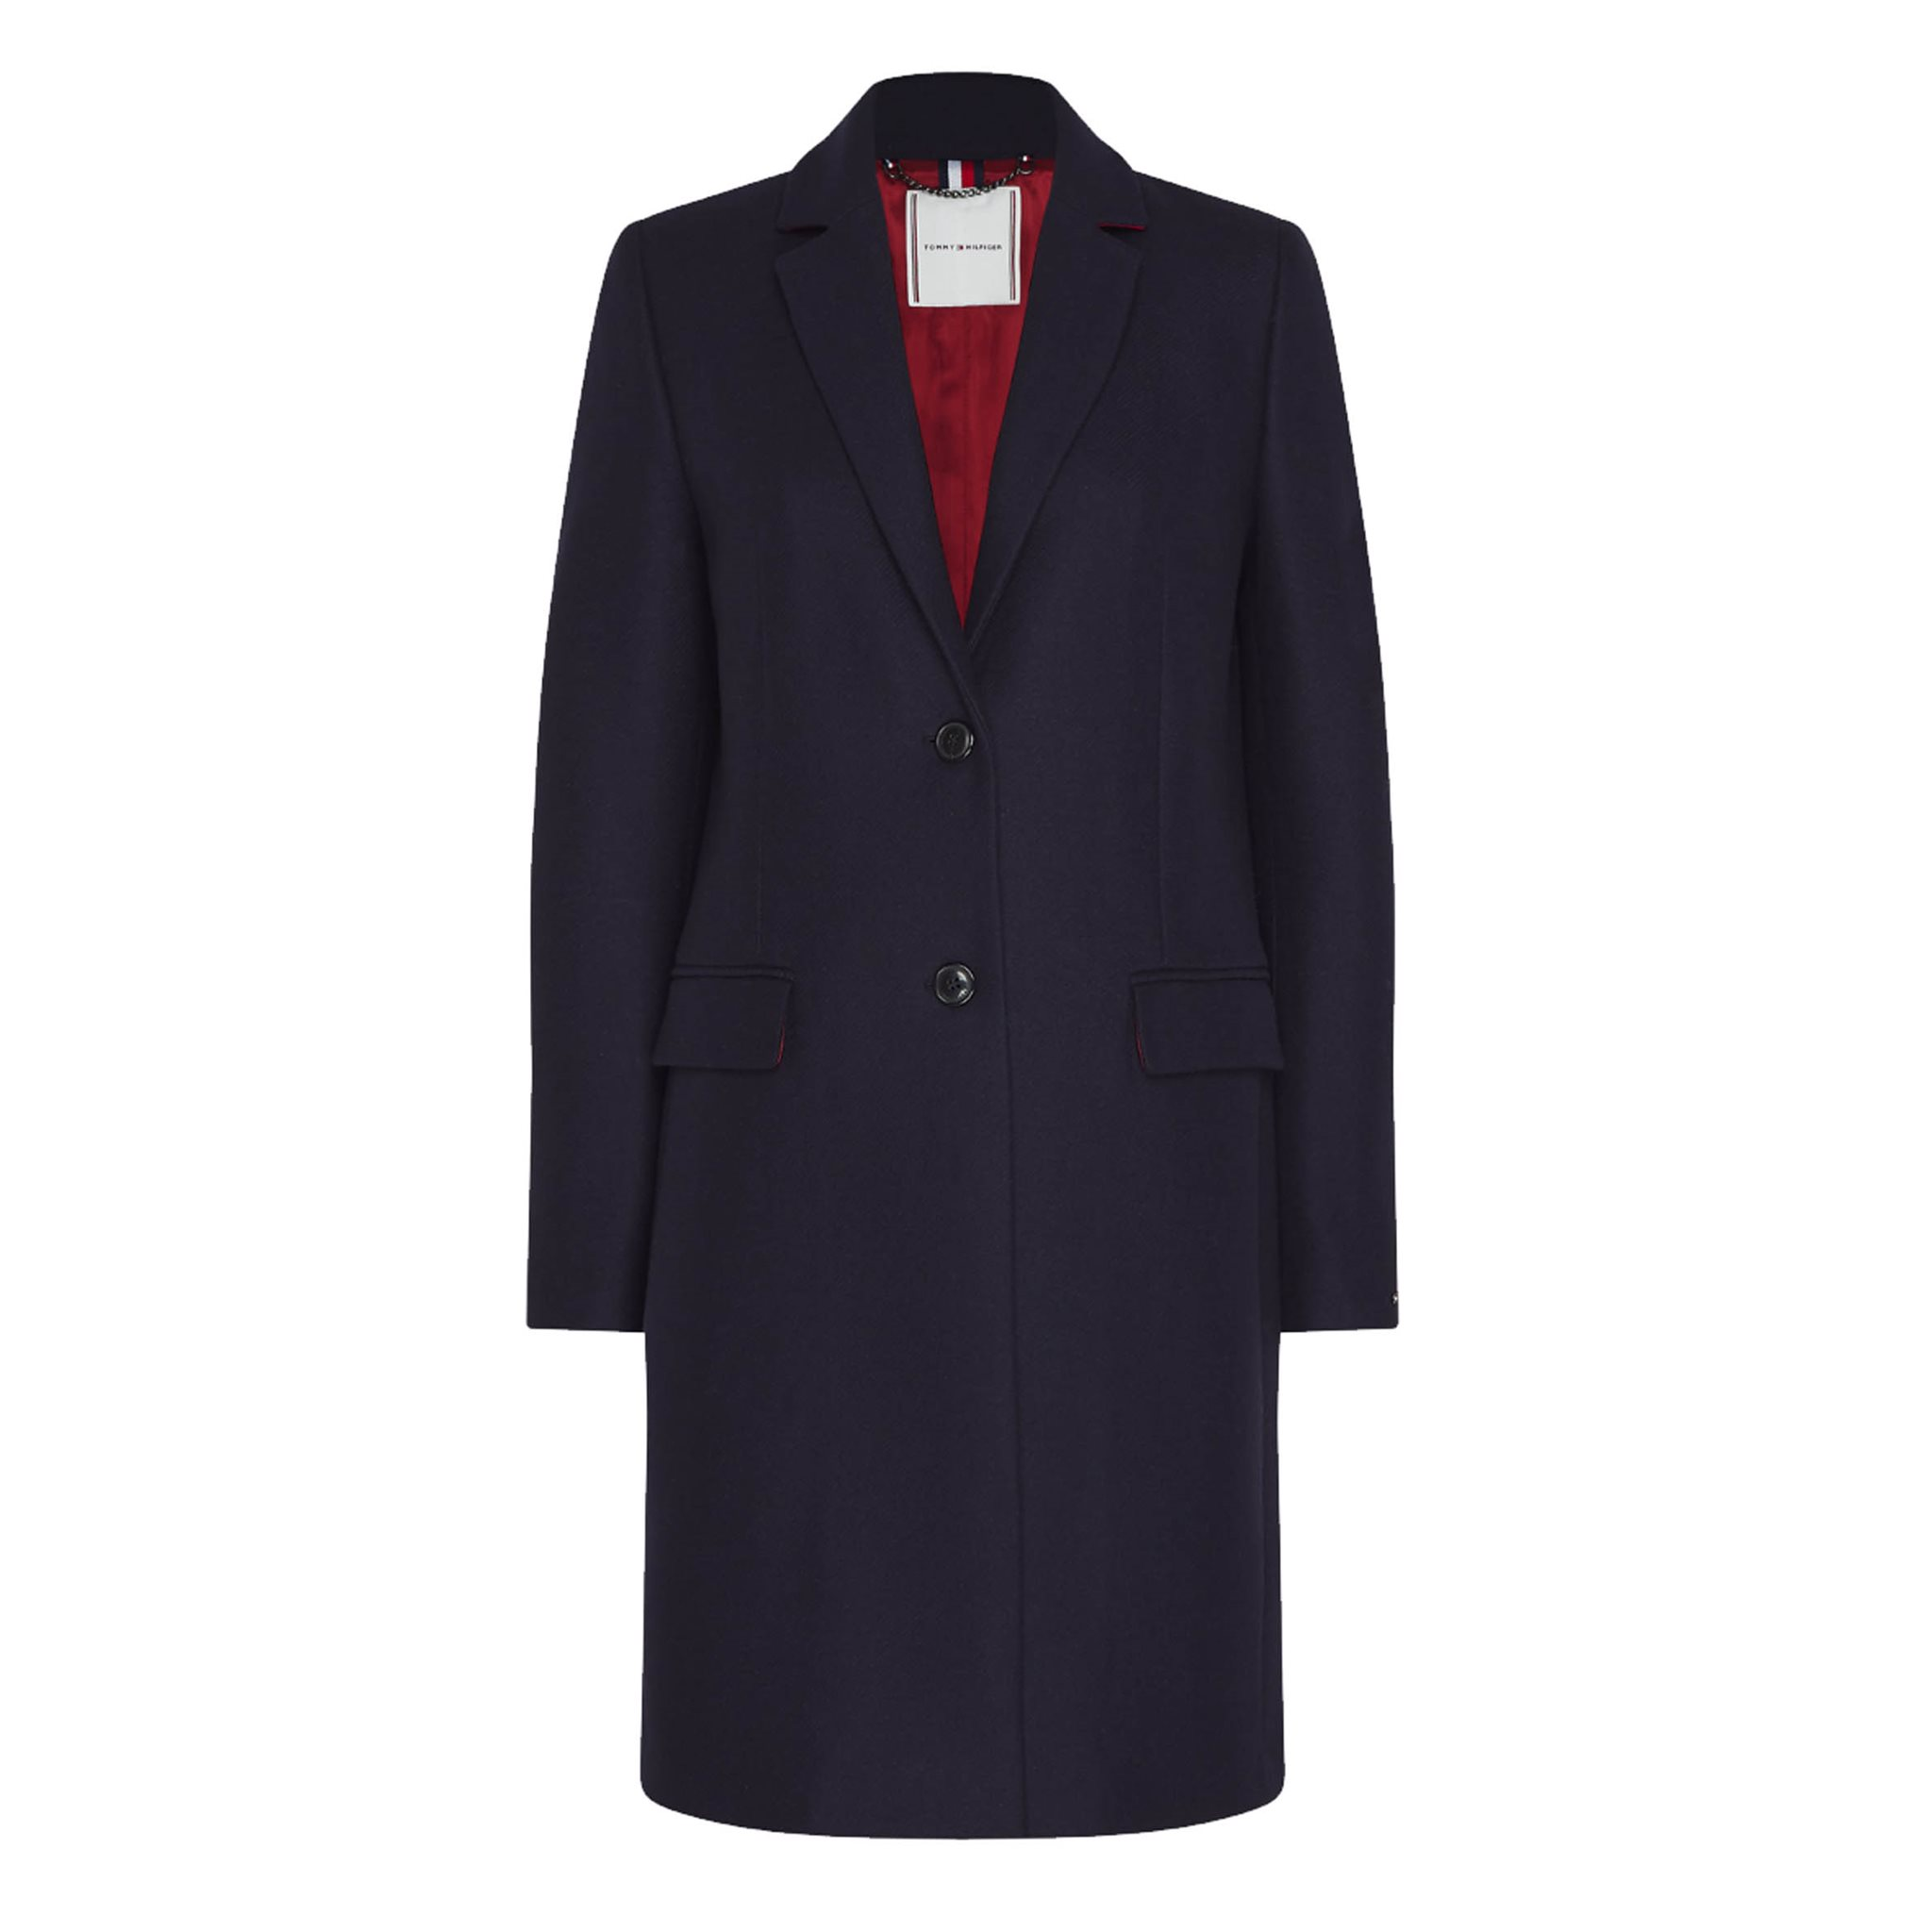 WOOL BLEND CLASSIC COAT TOMMY HILFIGER